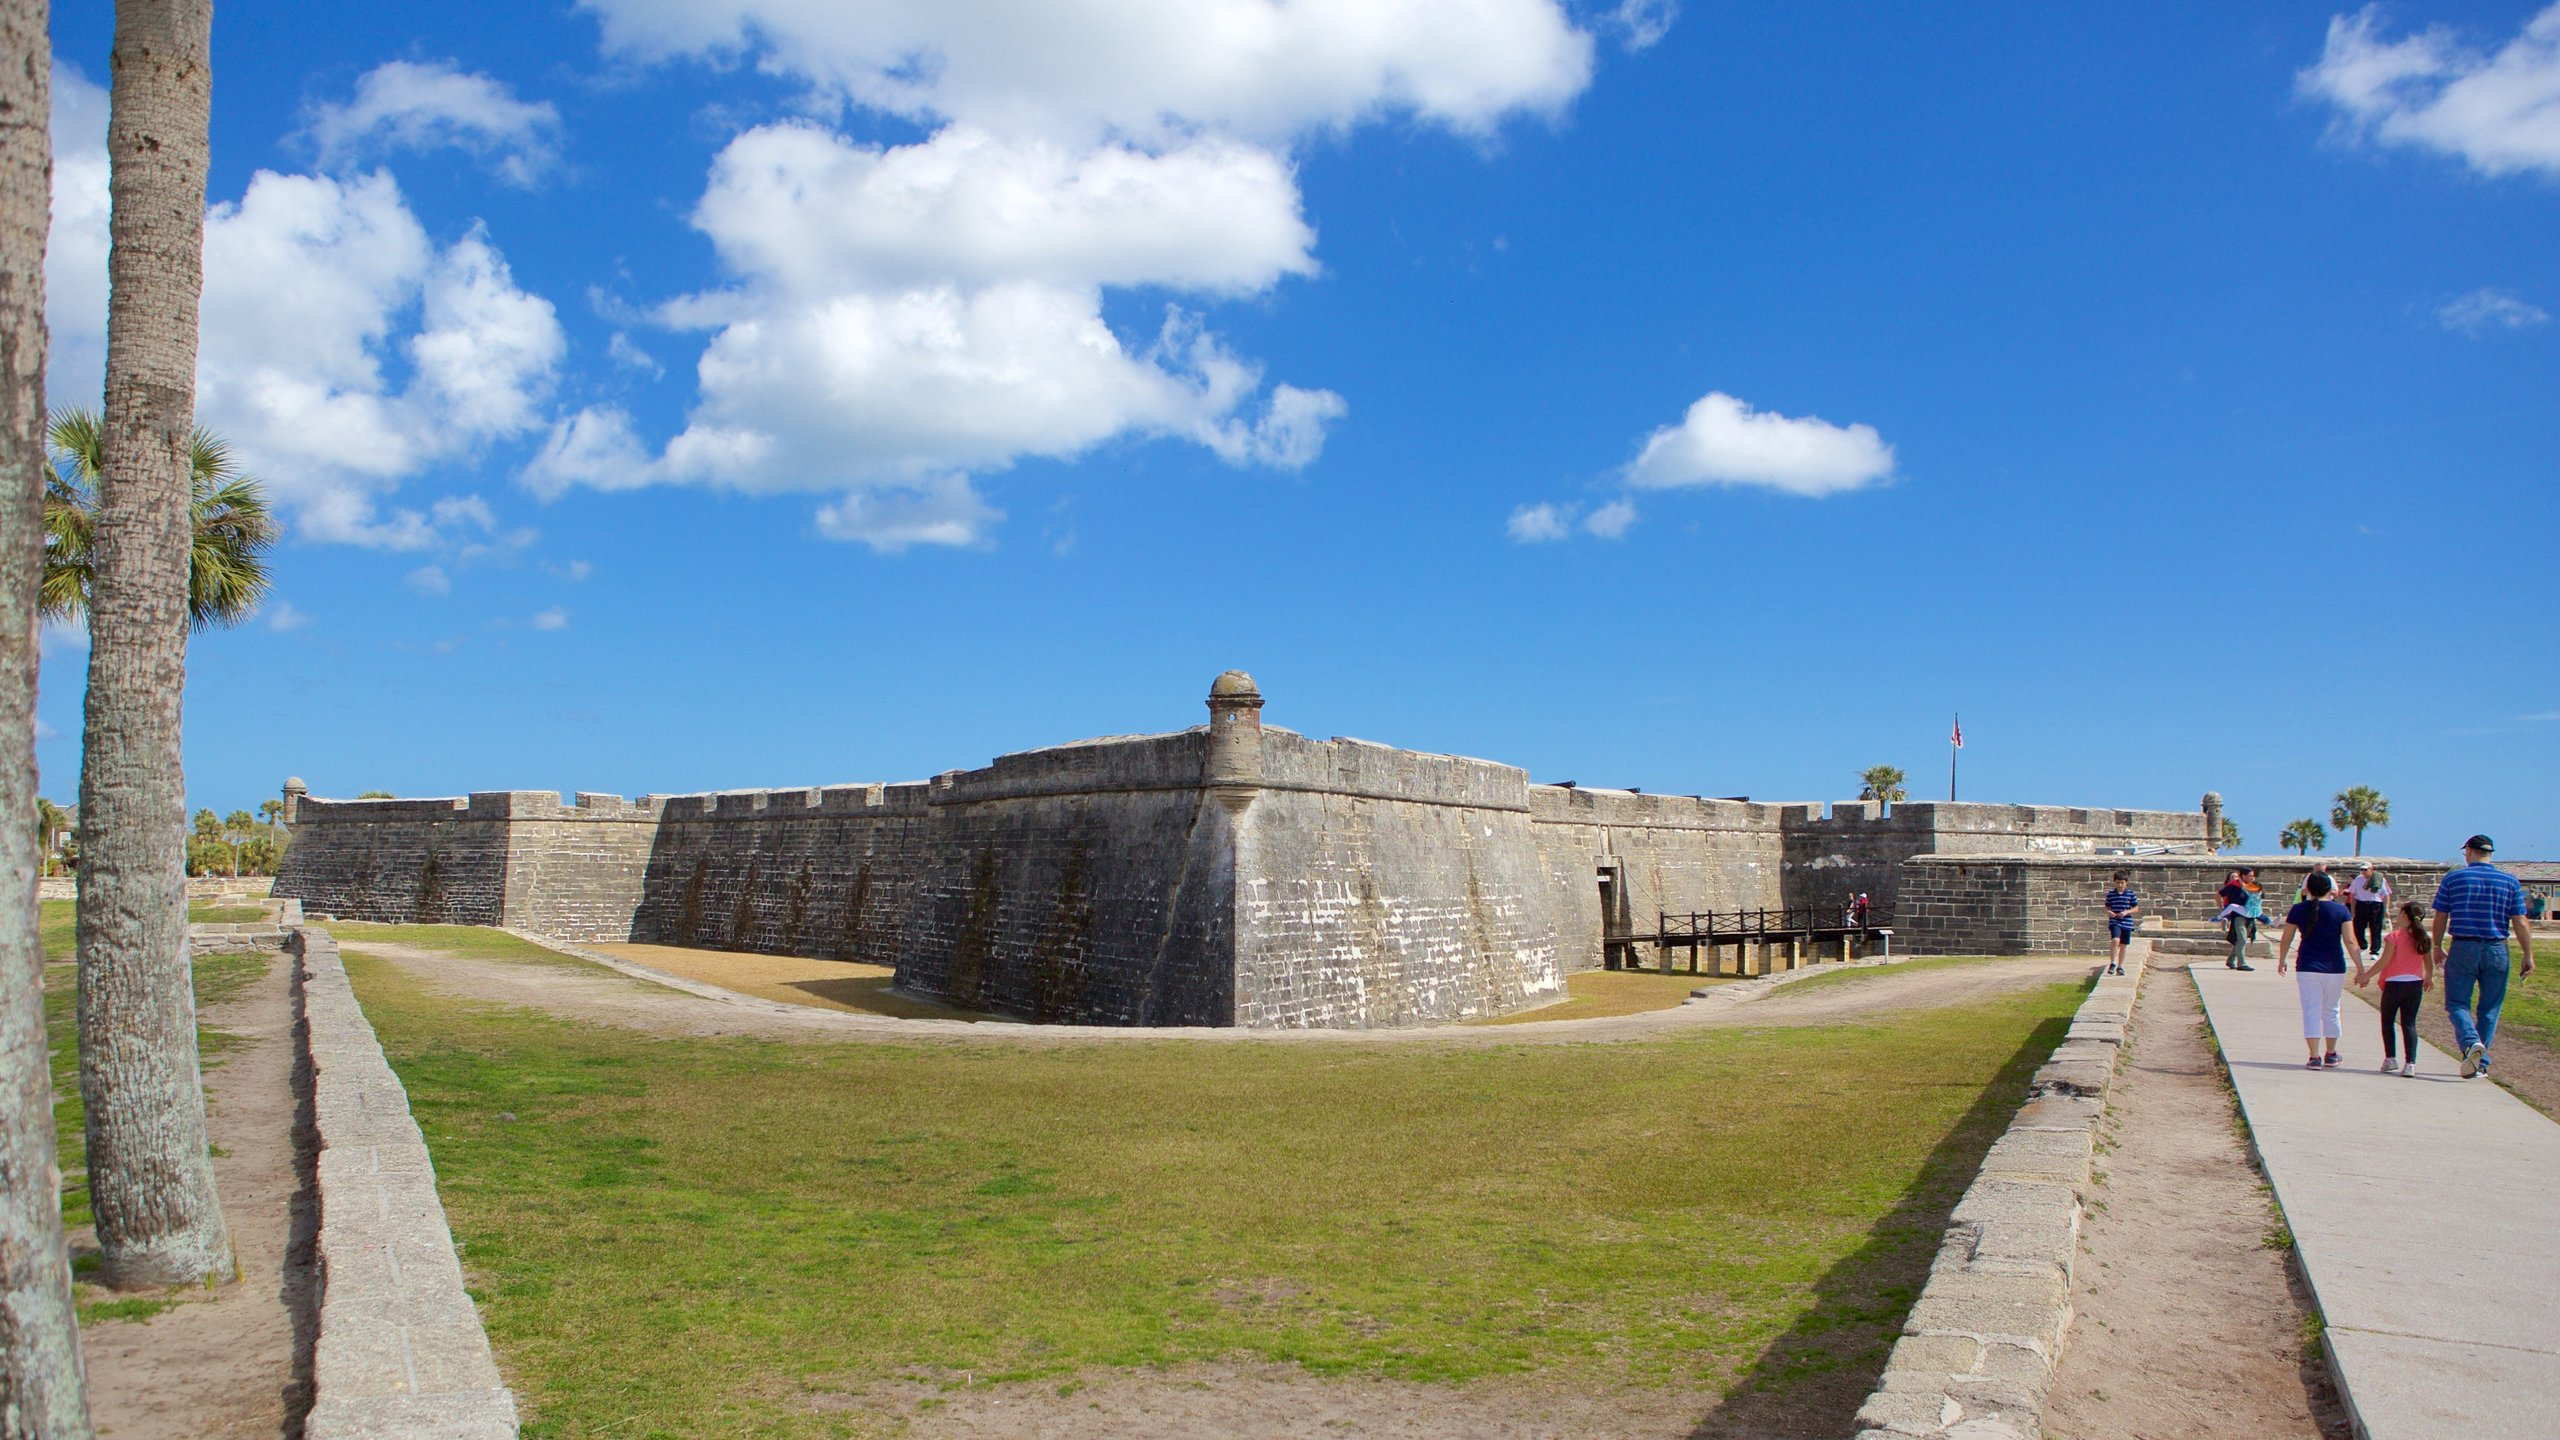 Explore one of the the oldest standing masonry forts in North America and watch cannons being fired from the ramparts.